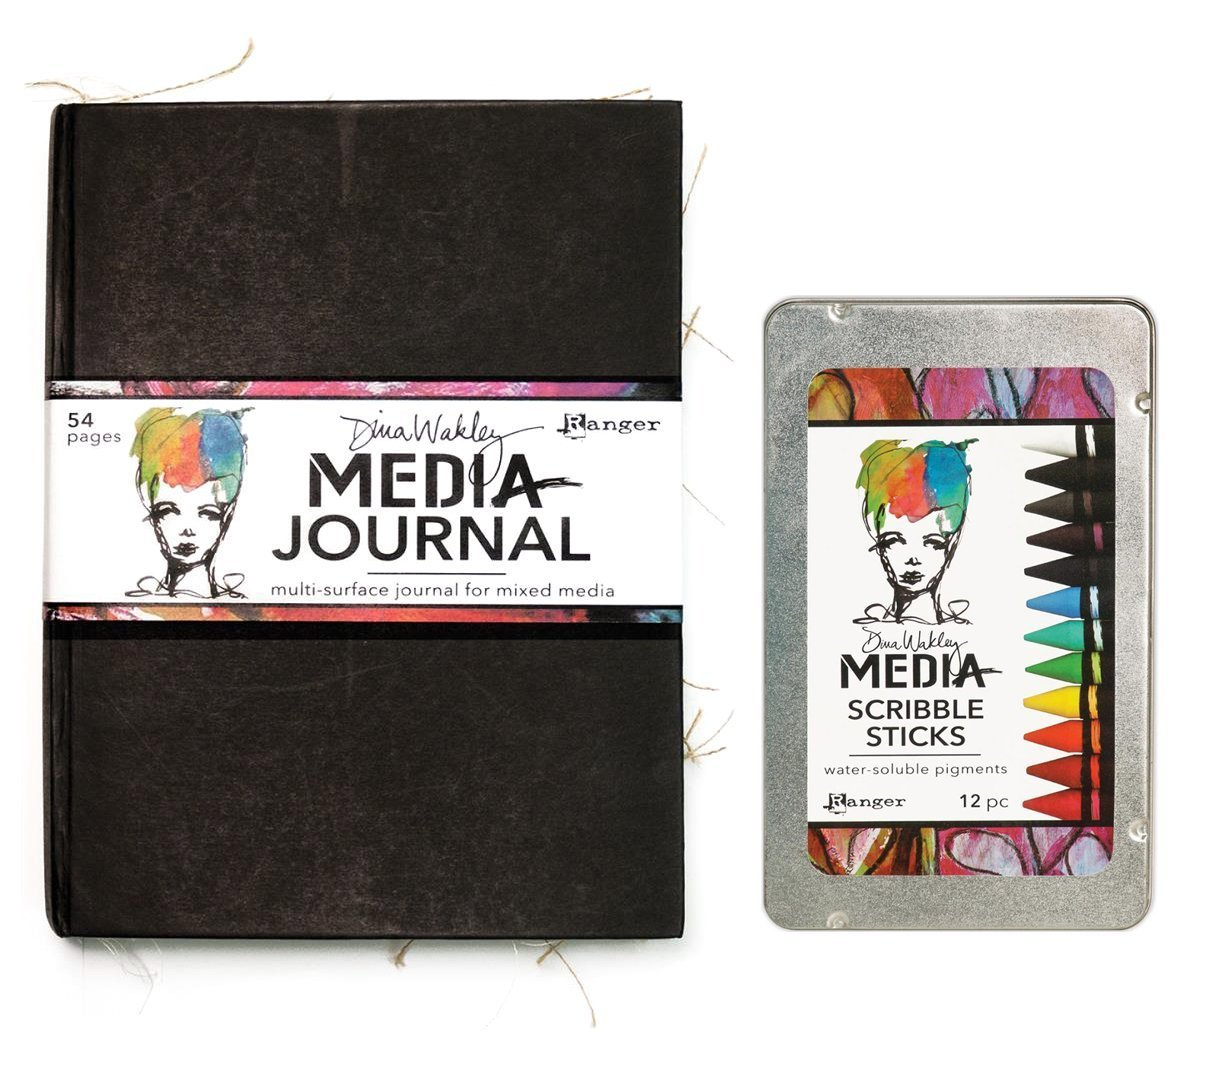 Dina Wakley Media Journal and Scribble Sticks Bundle - Mixed Media Journal & 12 Water-Soluble Crayons by Dina Wakley Media